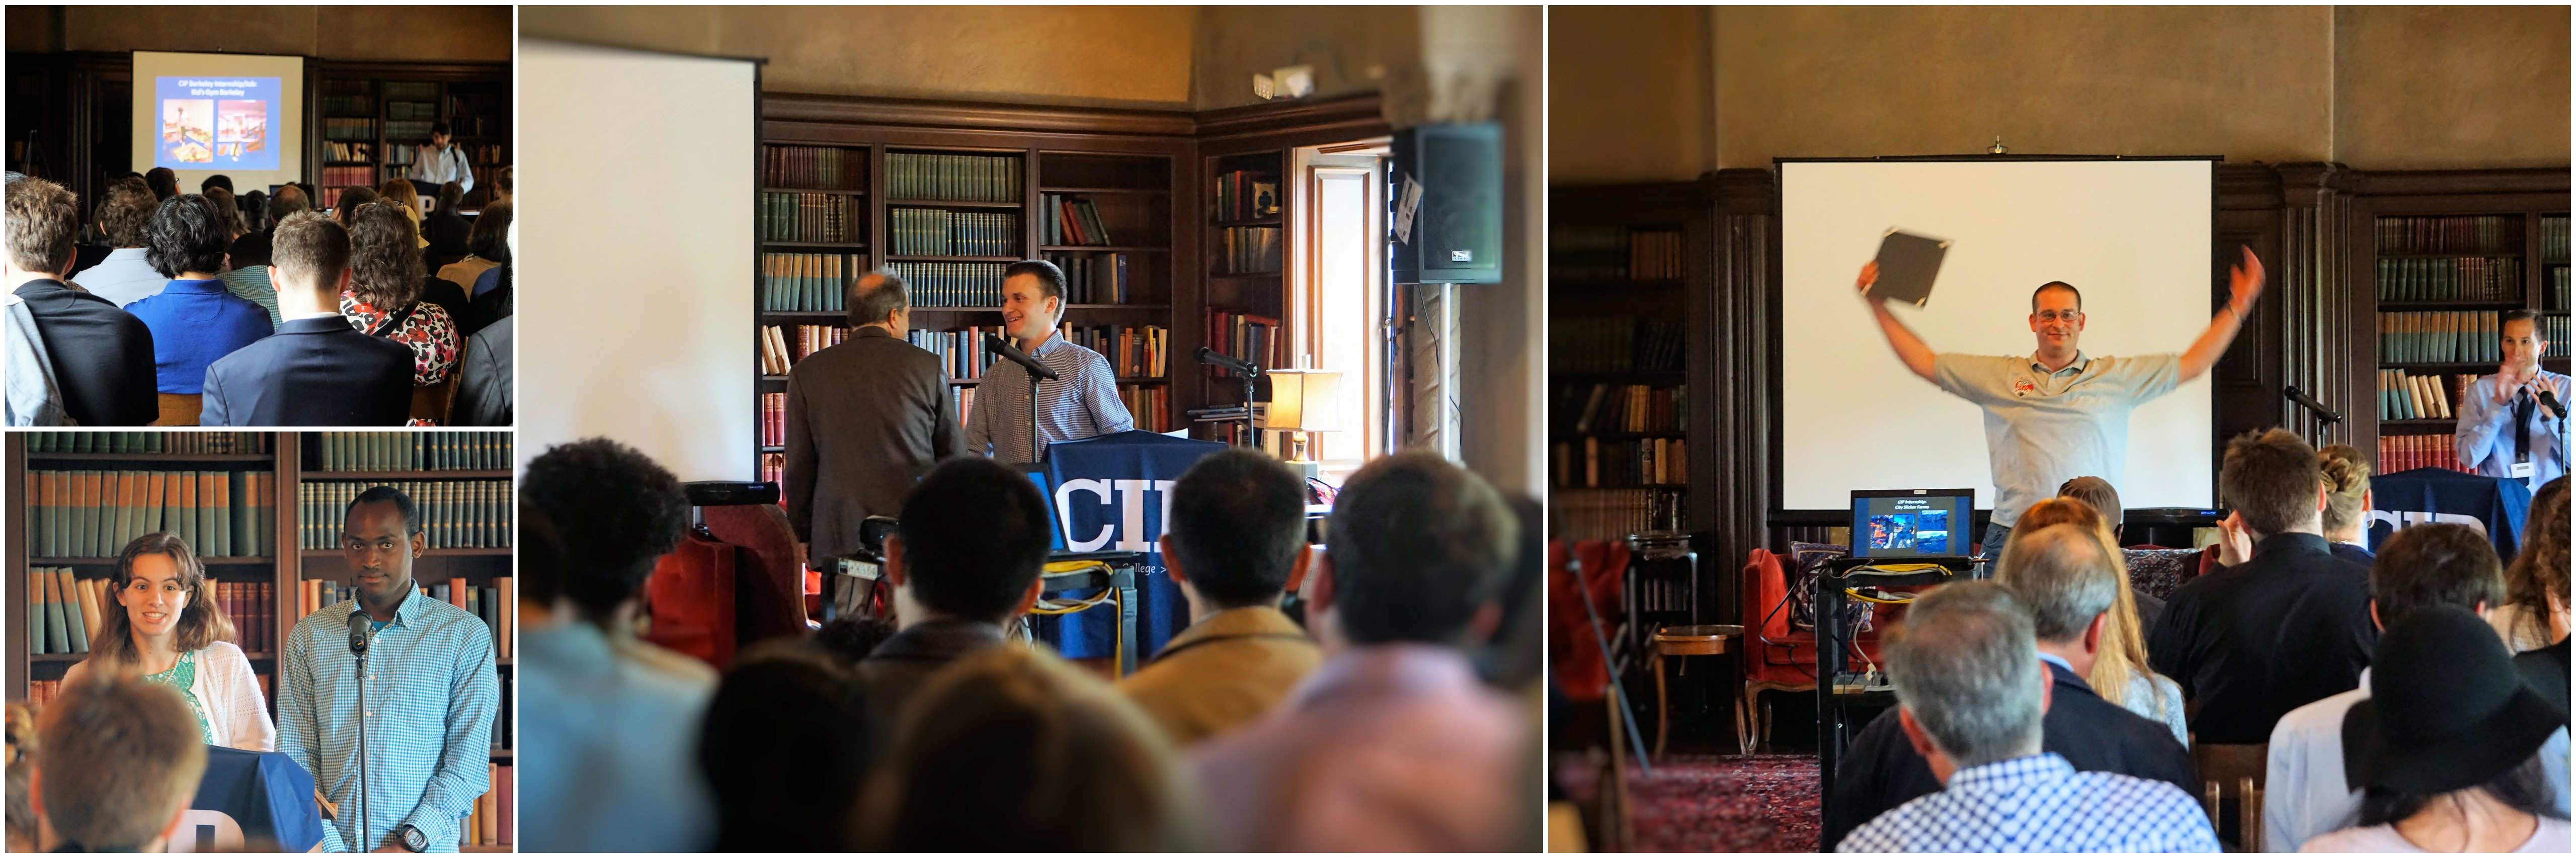 CIP Berkeley Convocation